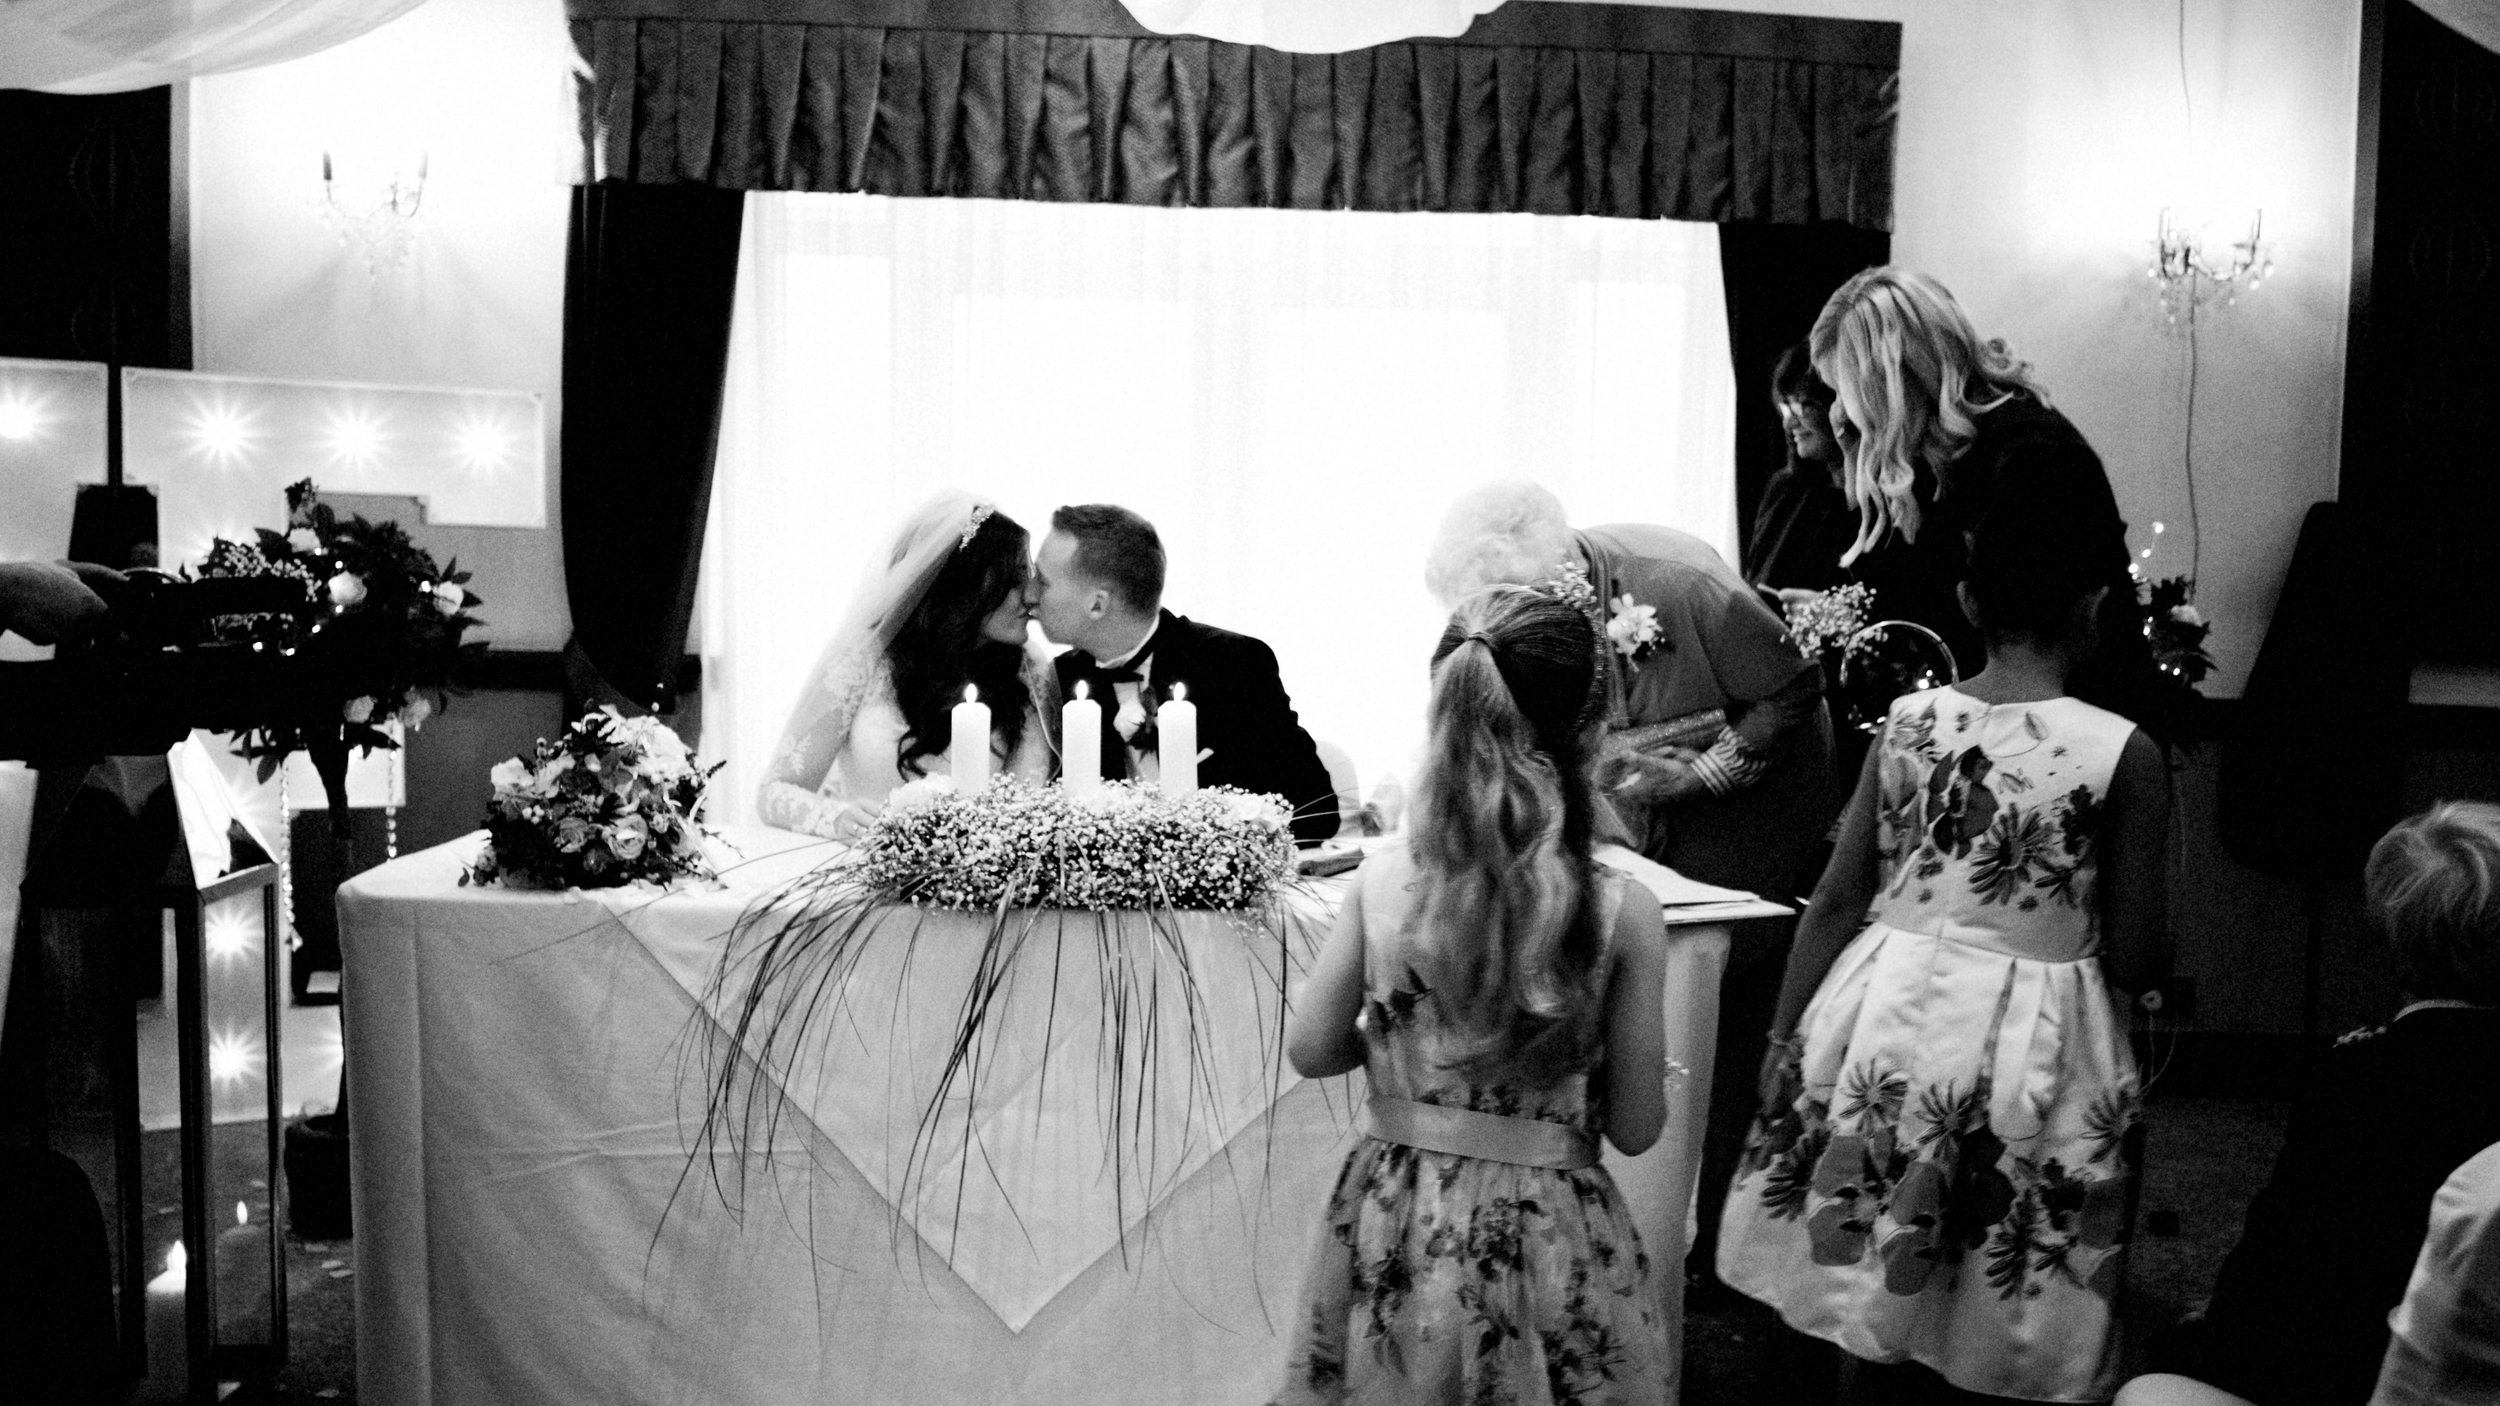 Private moment. Just married, Manchester wedding